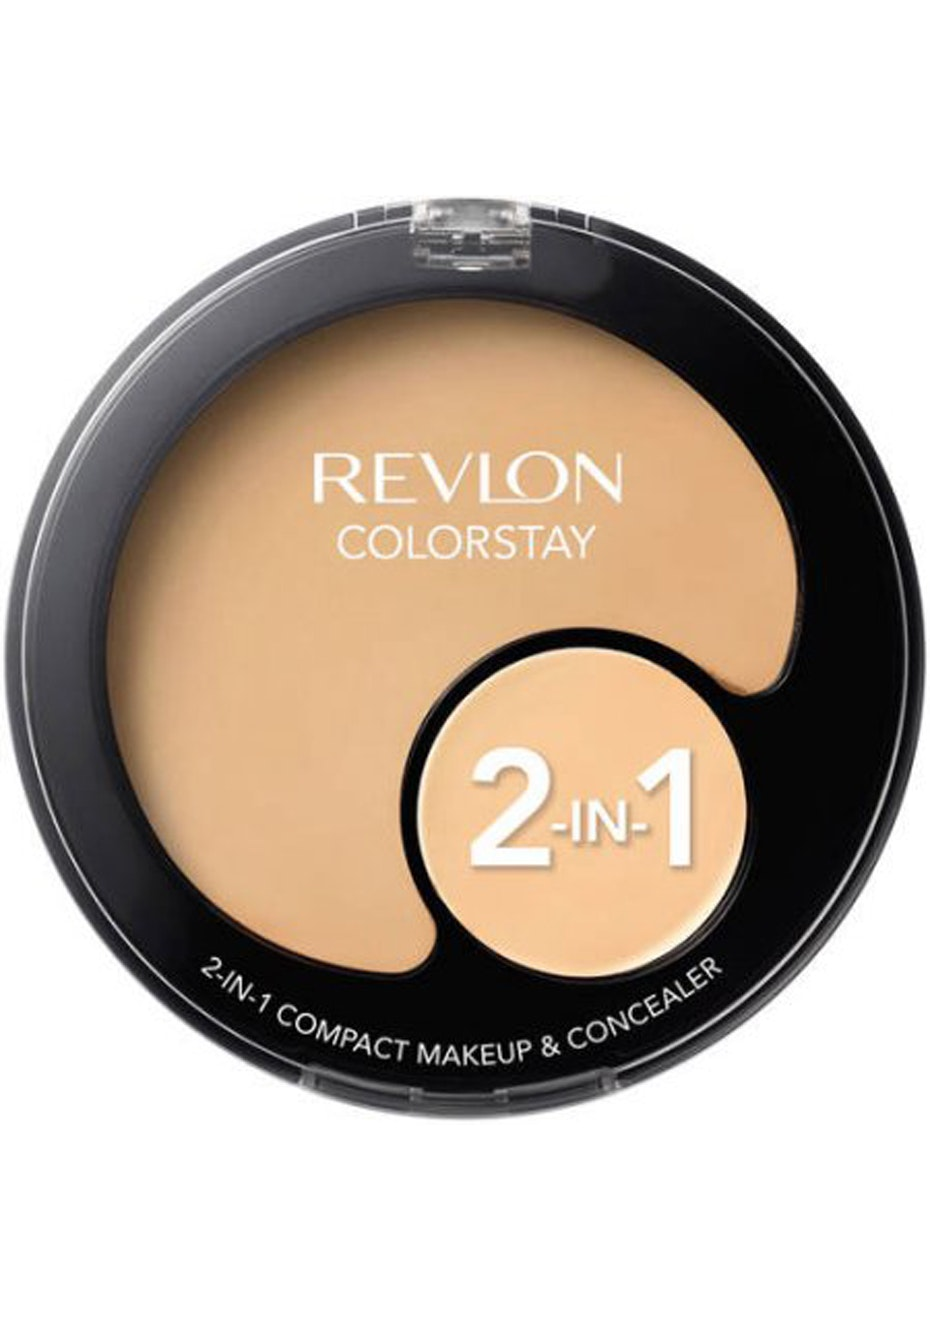 Revlon Colorstay 2in1 Compact Makeup And Concealer 150 Buff